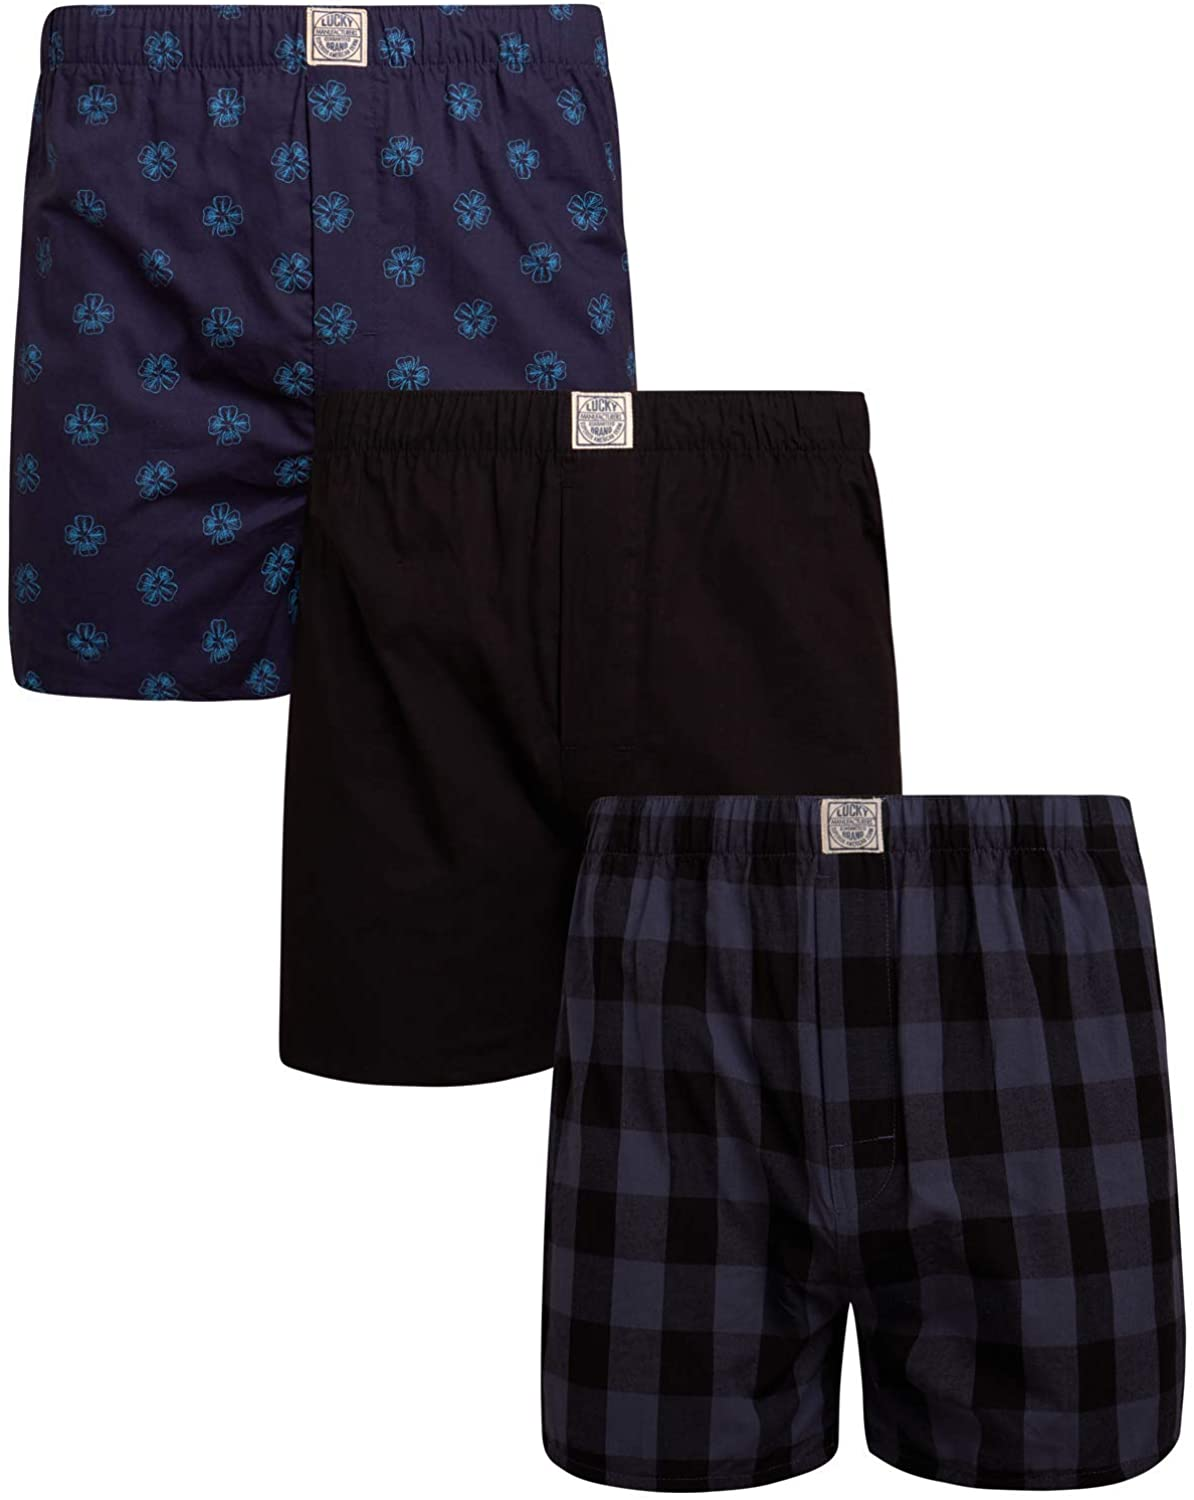 Lucky Brand Men's Woven Cotton Elastic Waist Boxer with Functional Fly (3 Pack)